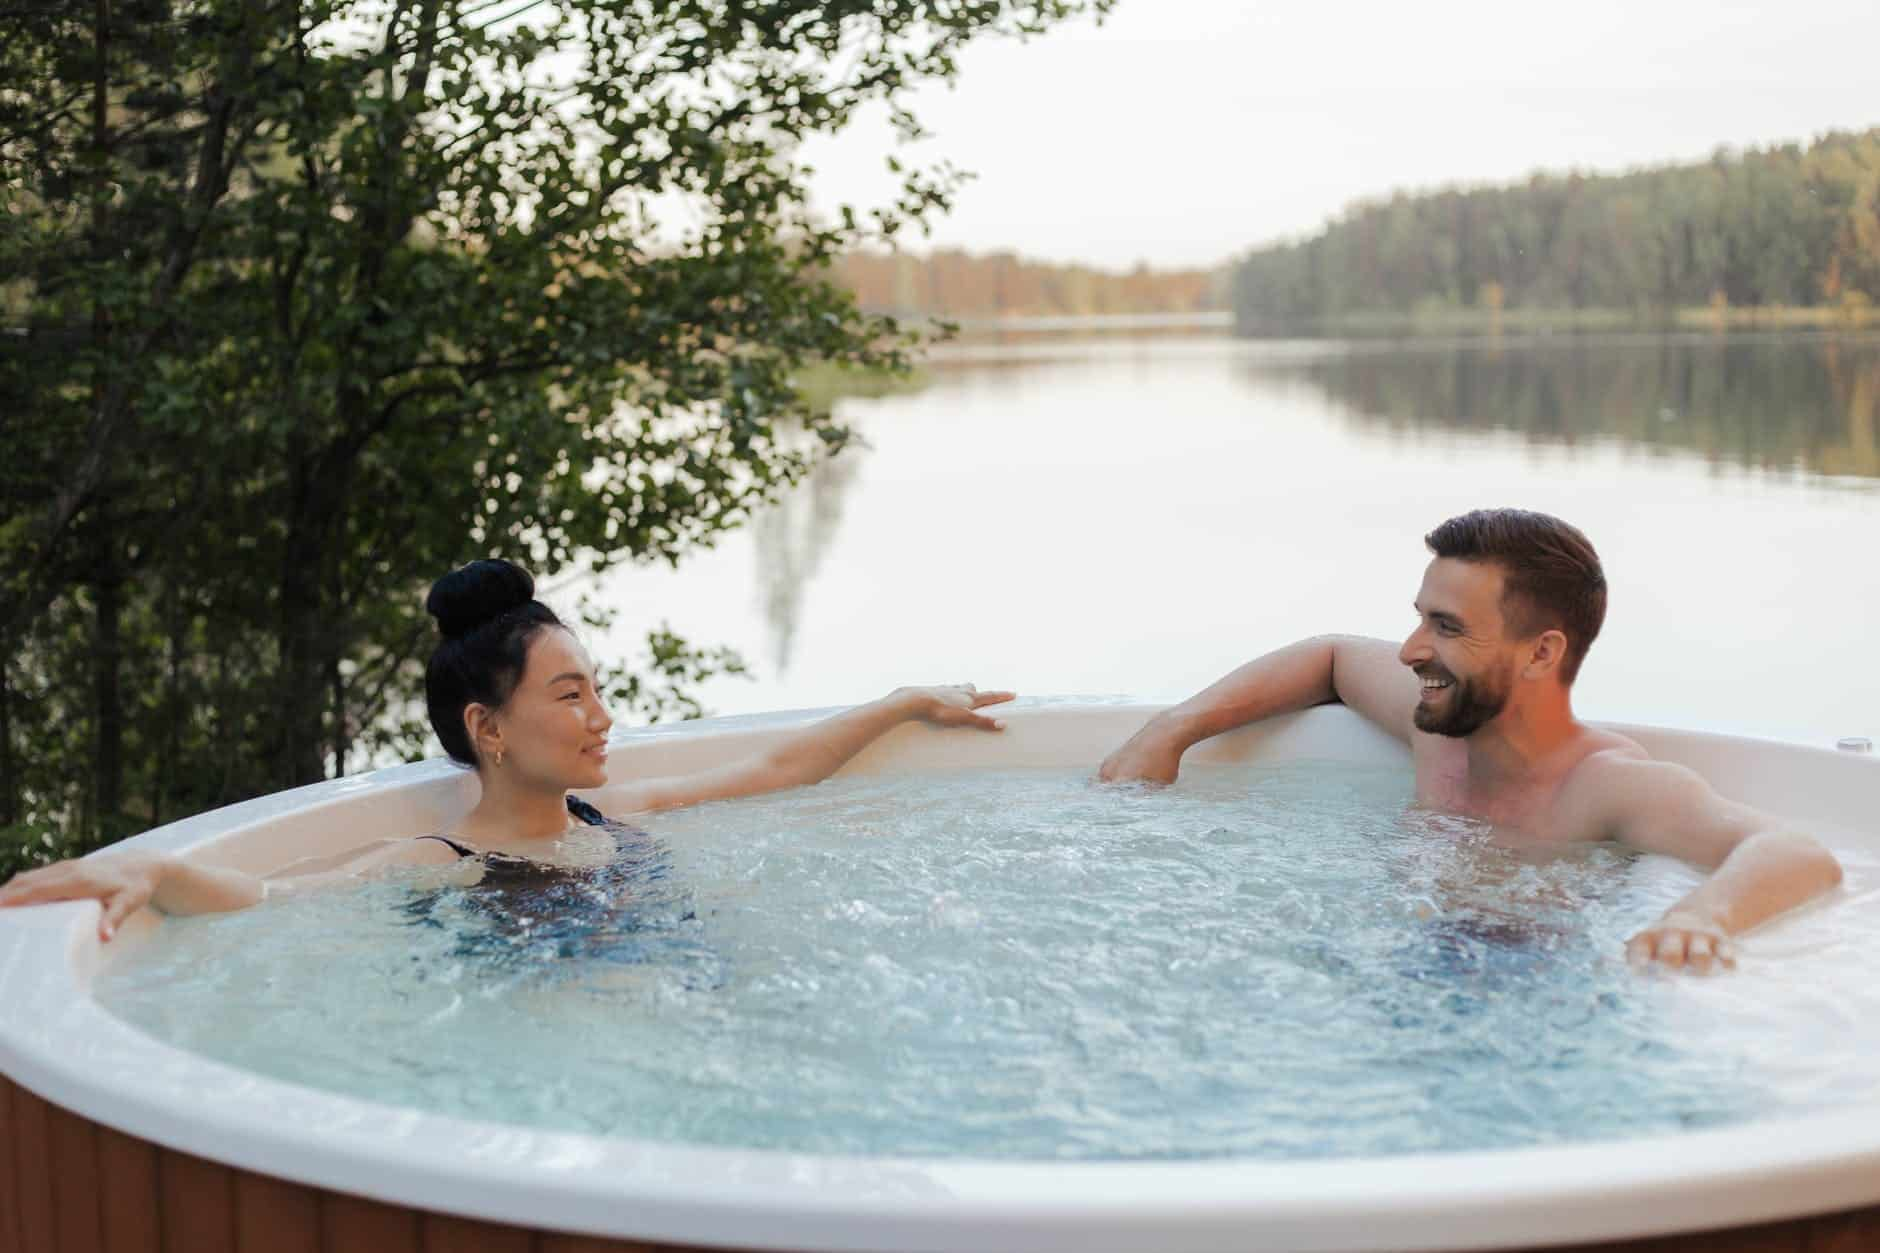 Couple looking at each other while relaxing in a jacuzzi